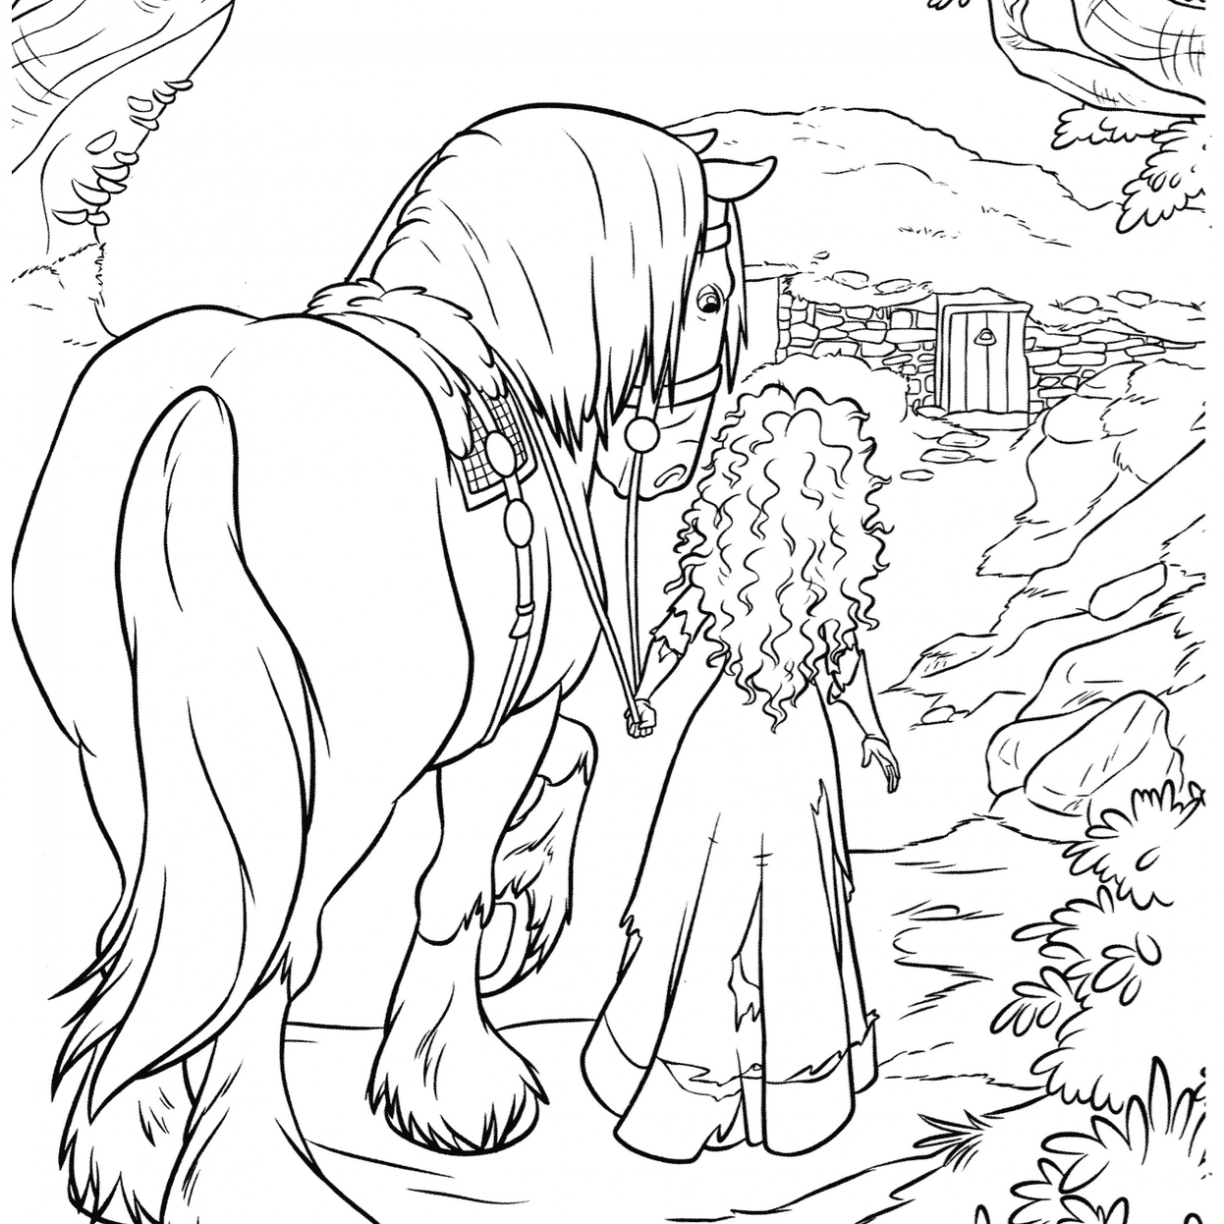 1224x1224 Coloring Pages Braveneys Sheet Freeney Image Aladdin Coloring Pages